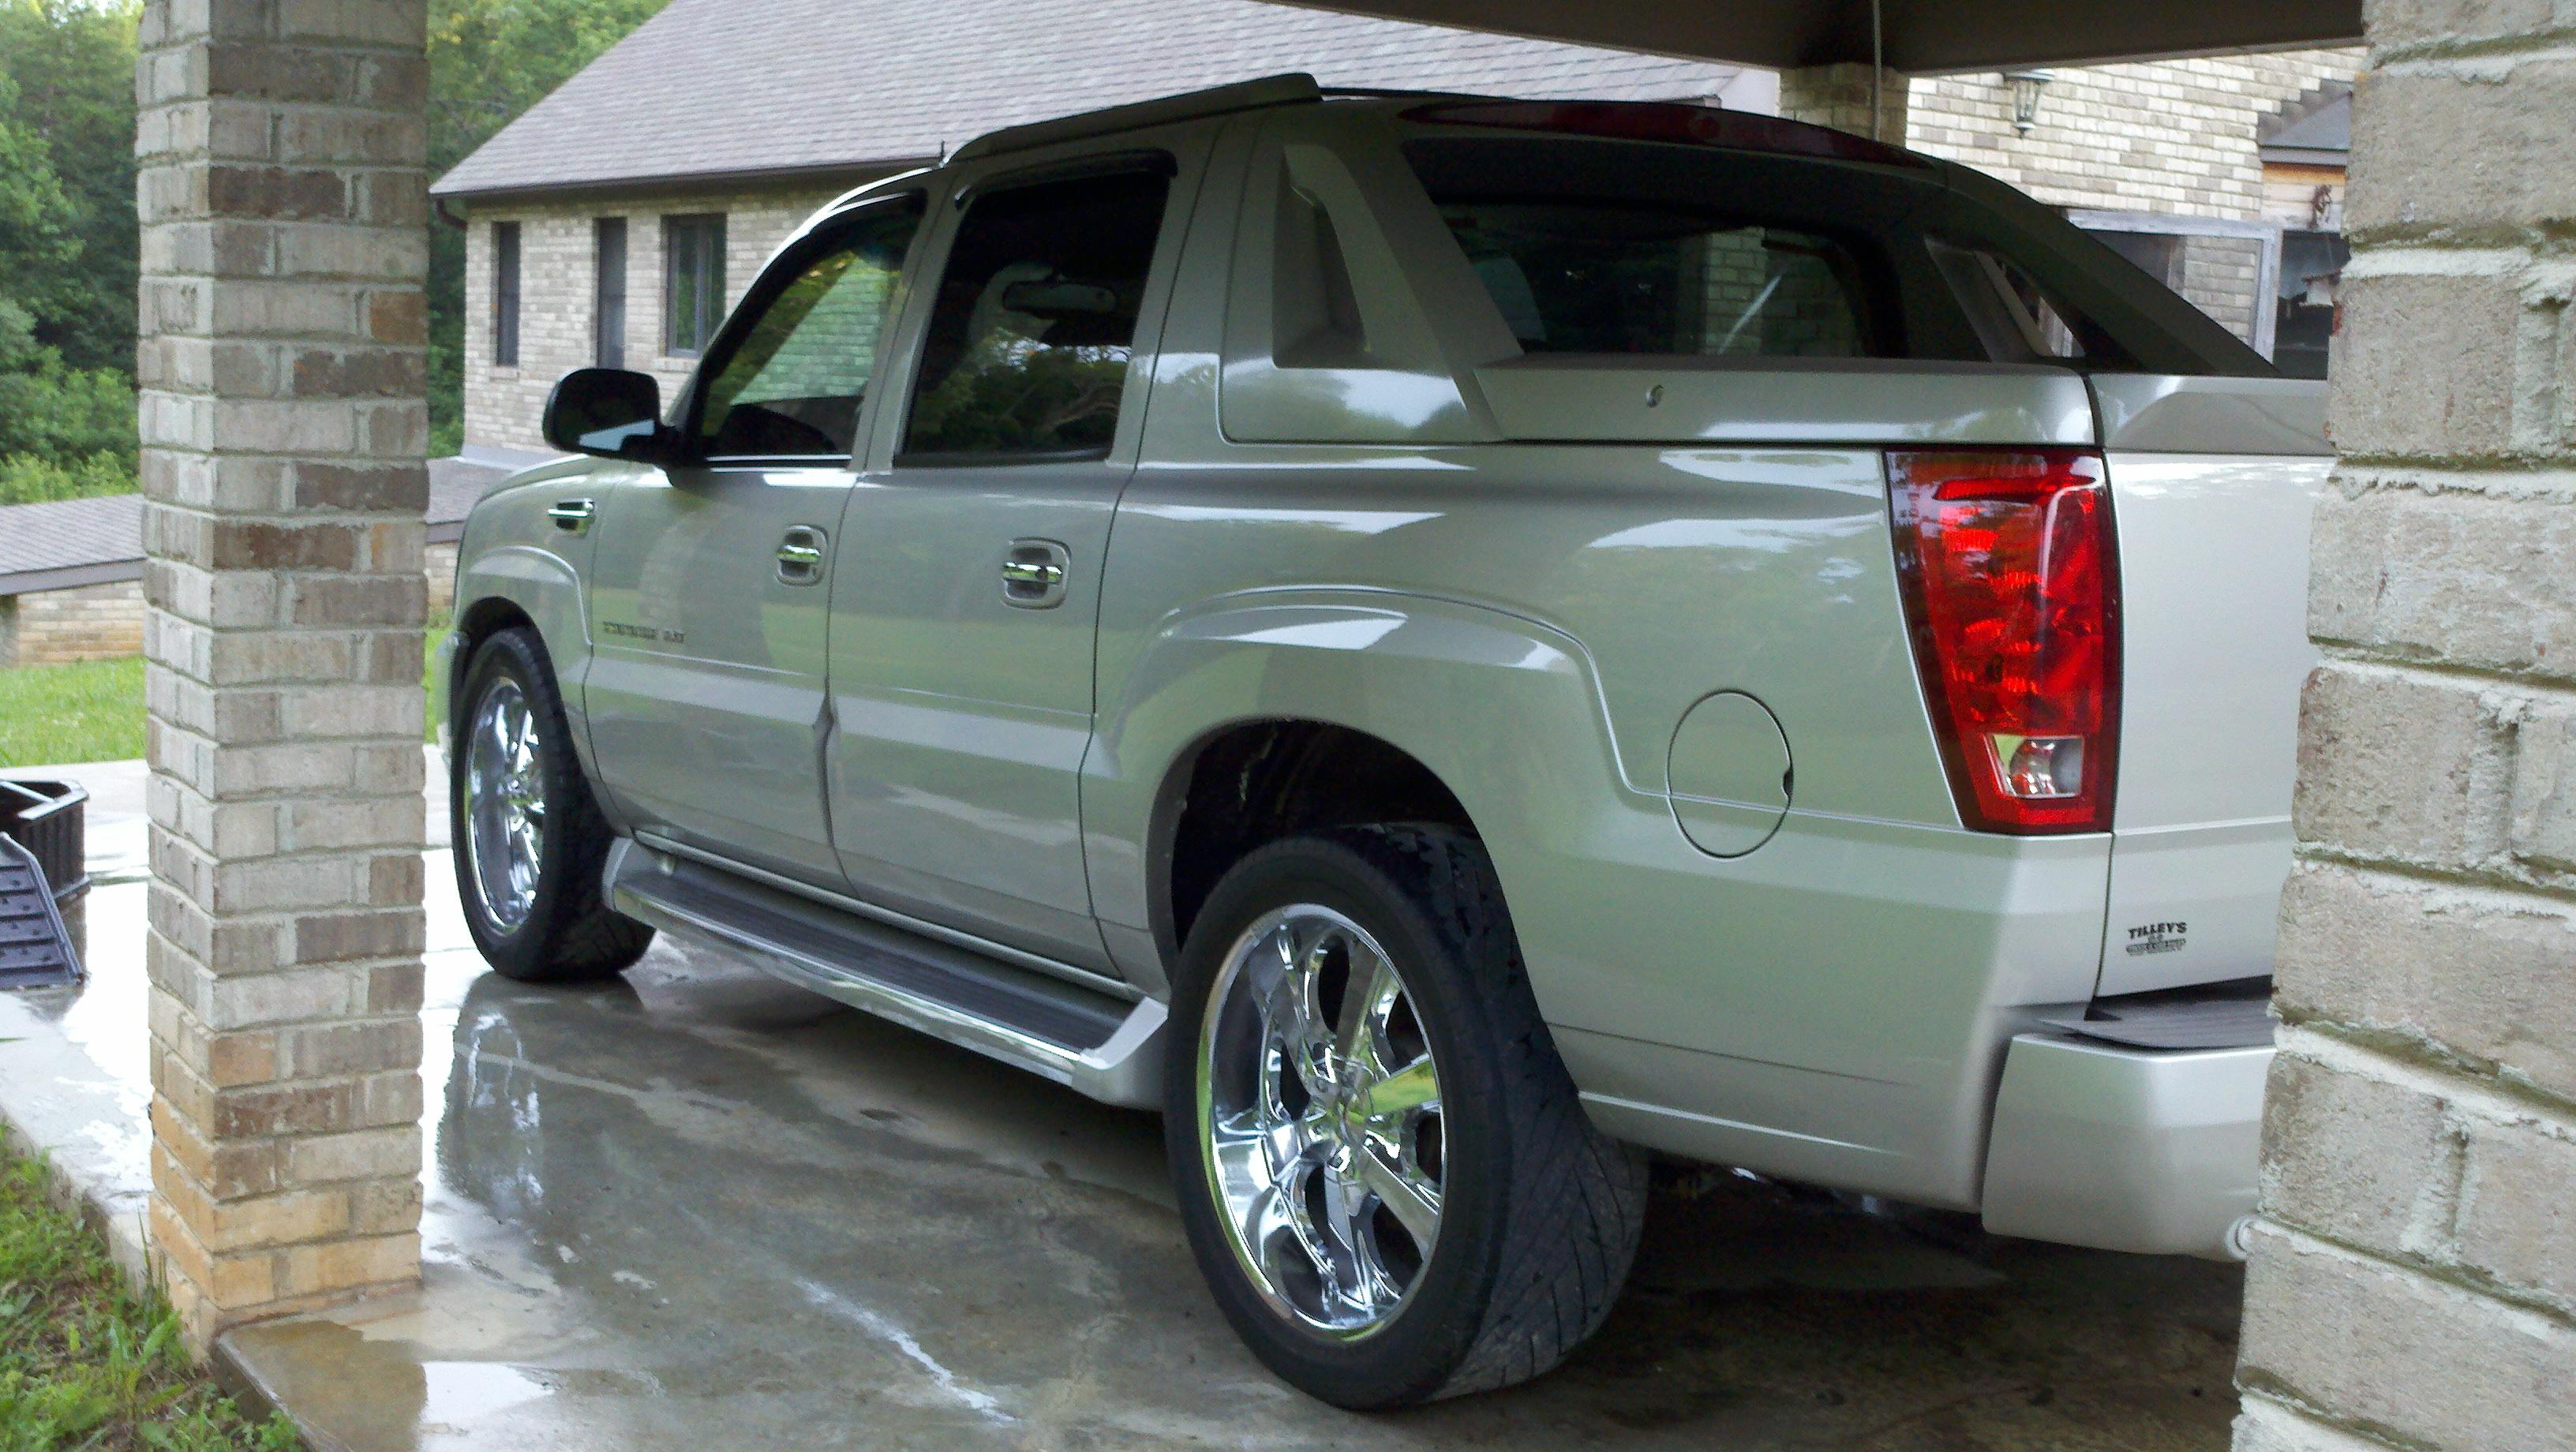 gt titan pics wheel brakes crew interior with forums cadillac cab wheels escalade le tires